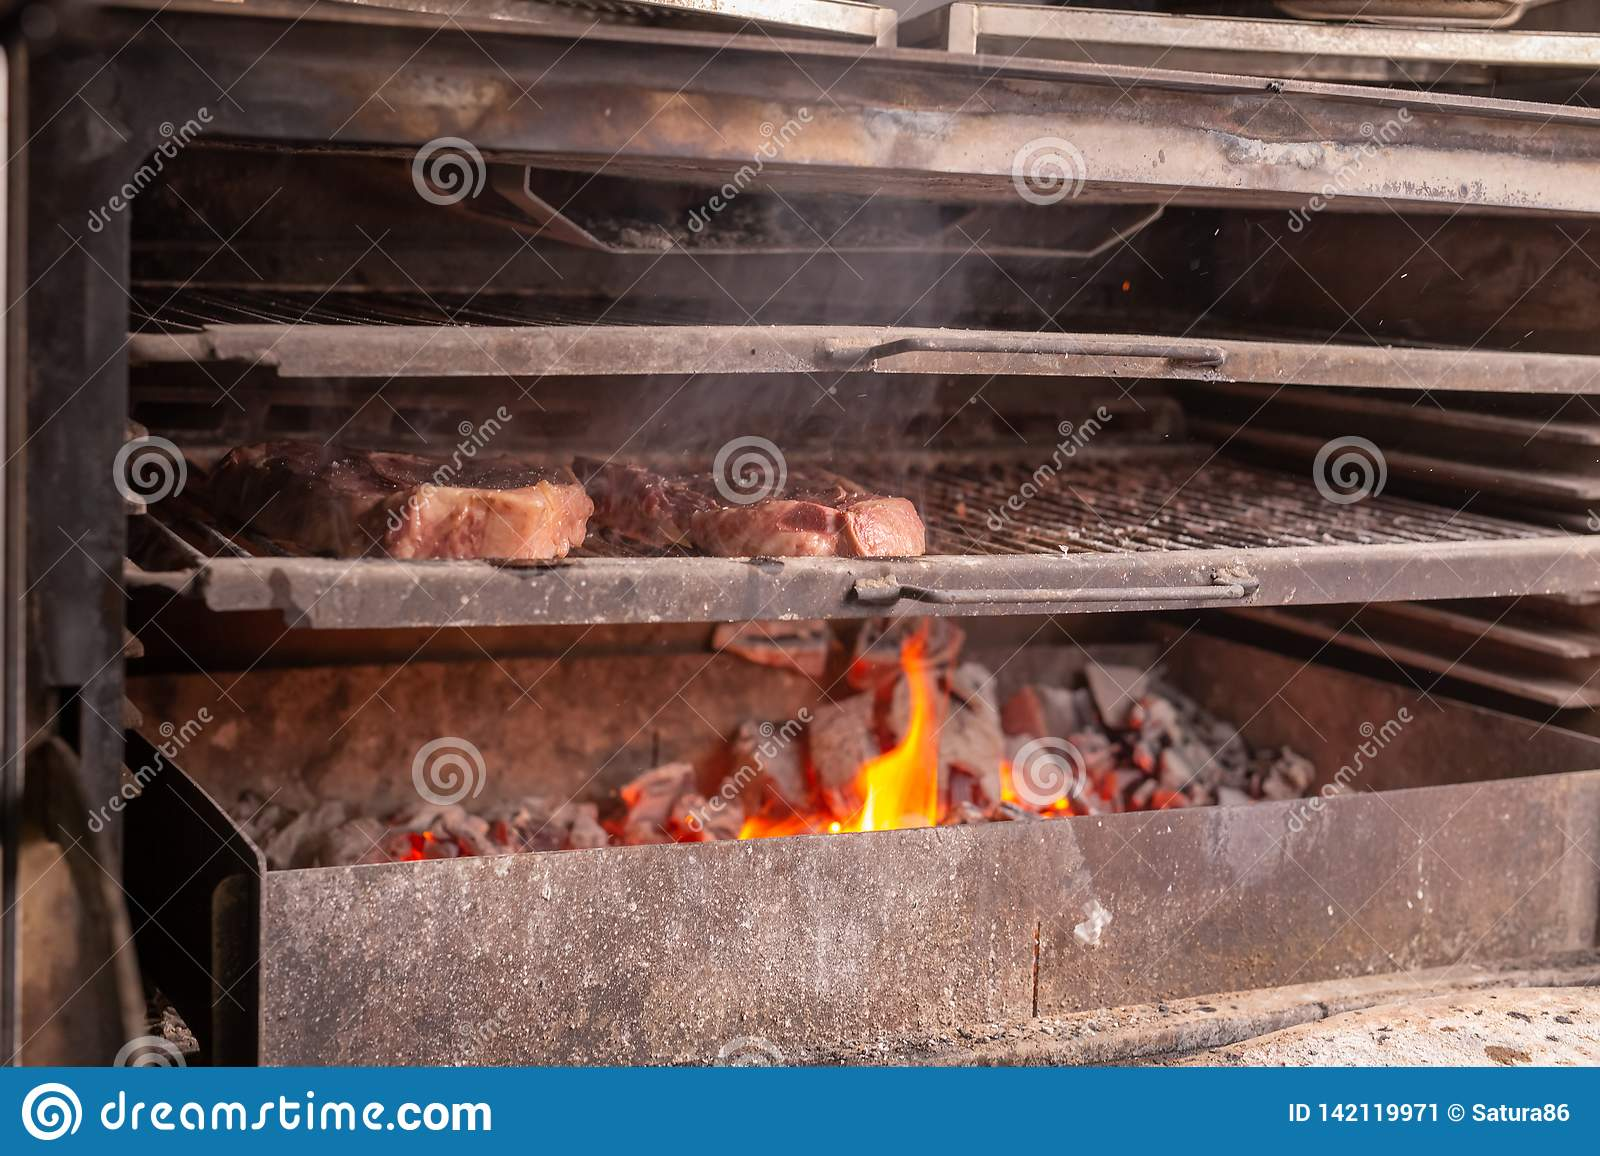 Food Craft And Delicious Concept Cooking Steak On A Grill Stock Image Image Of Angus Outside 142119971